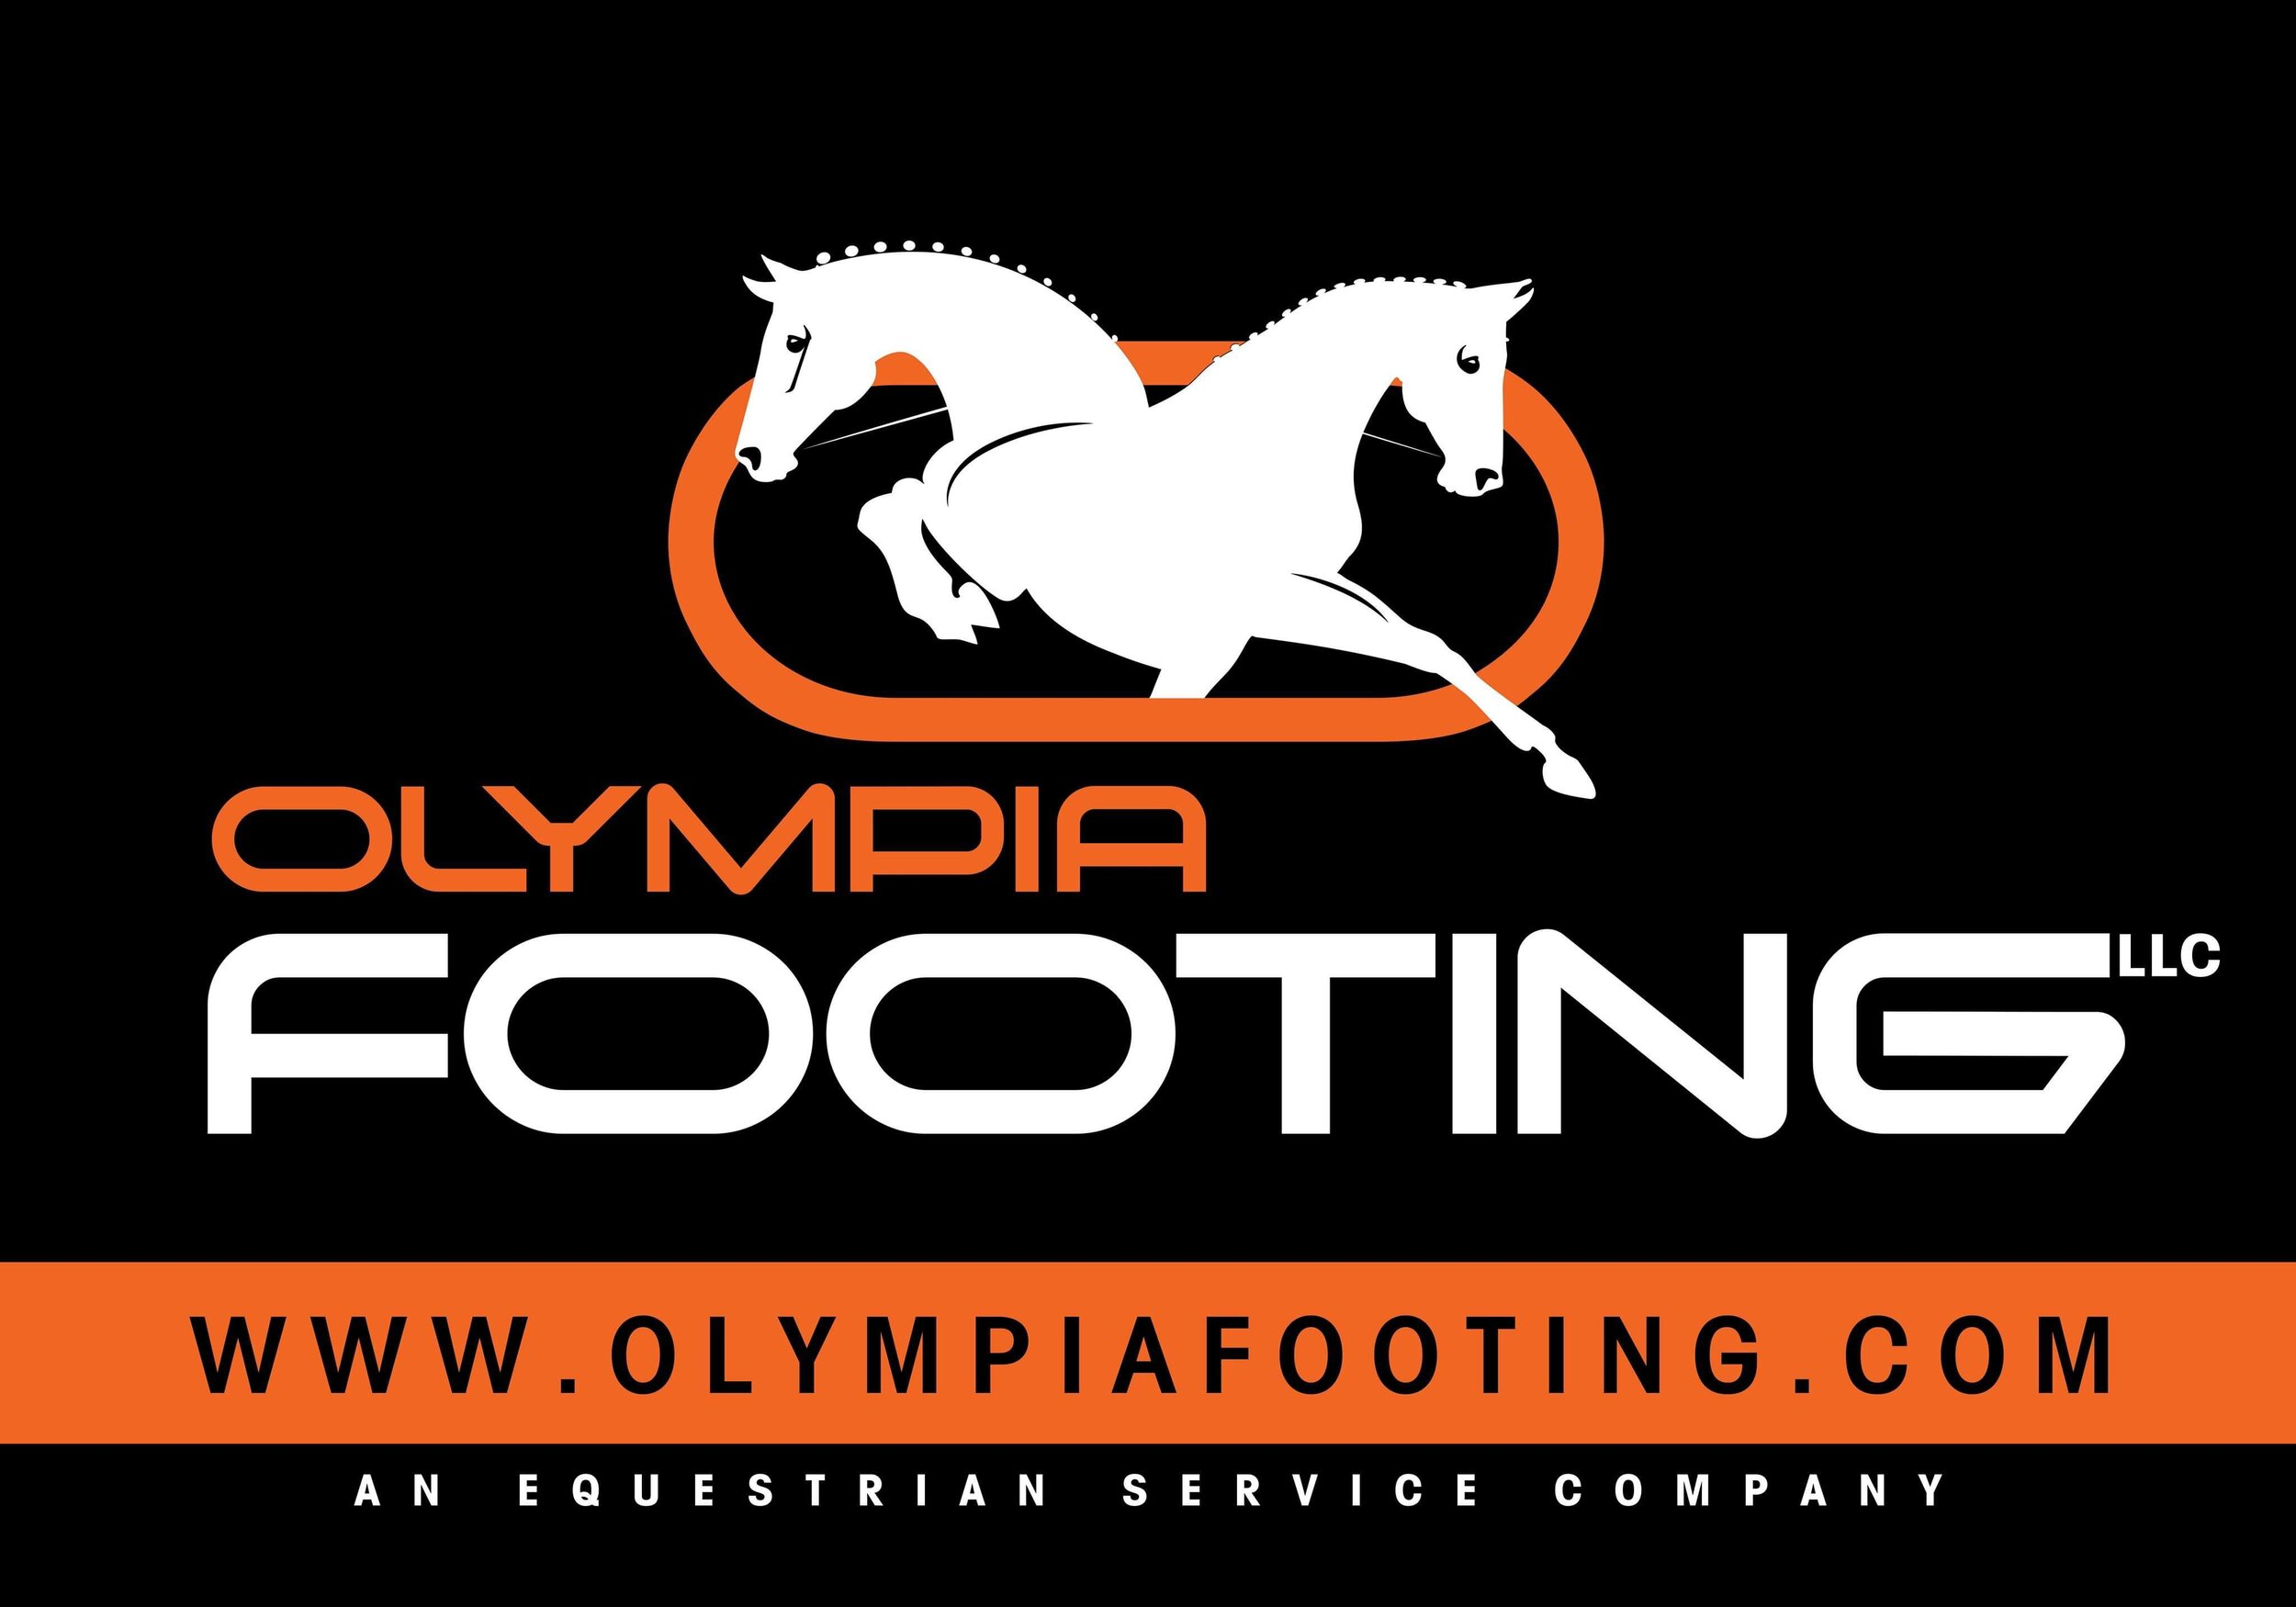 Olympia Footing